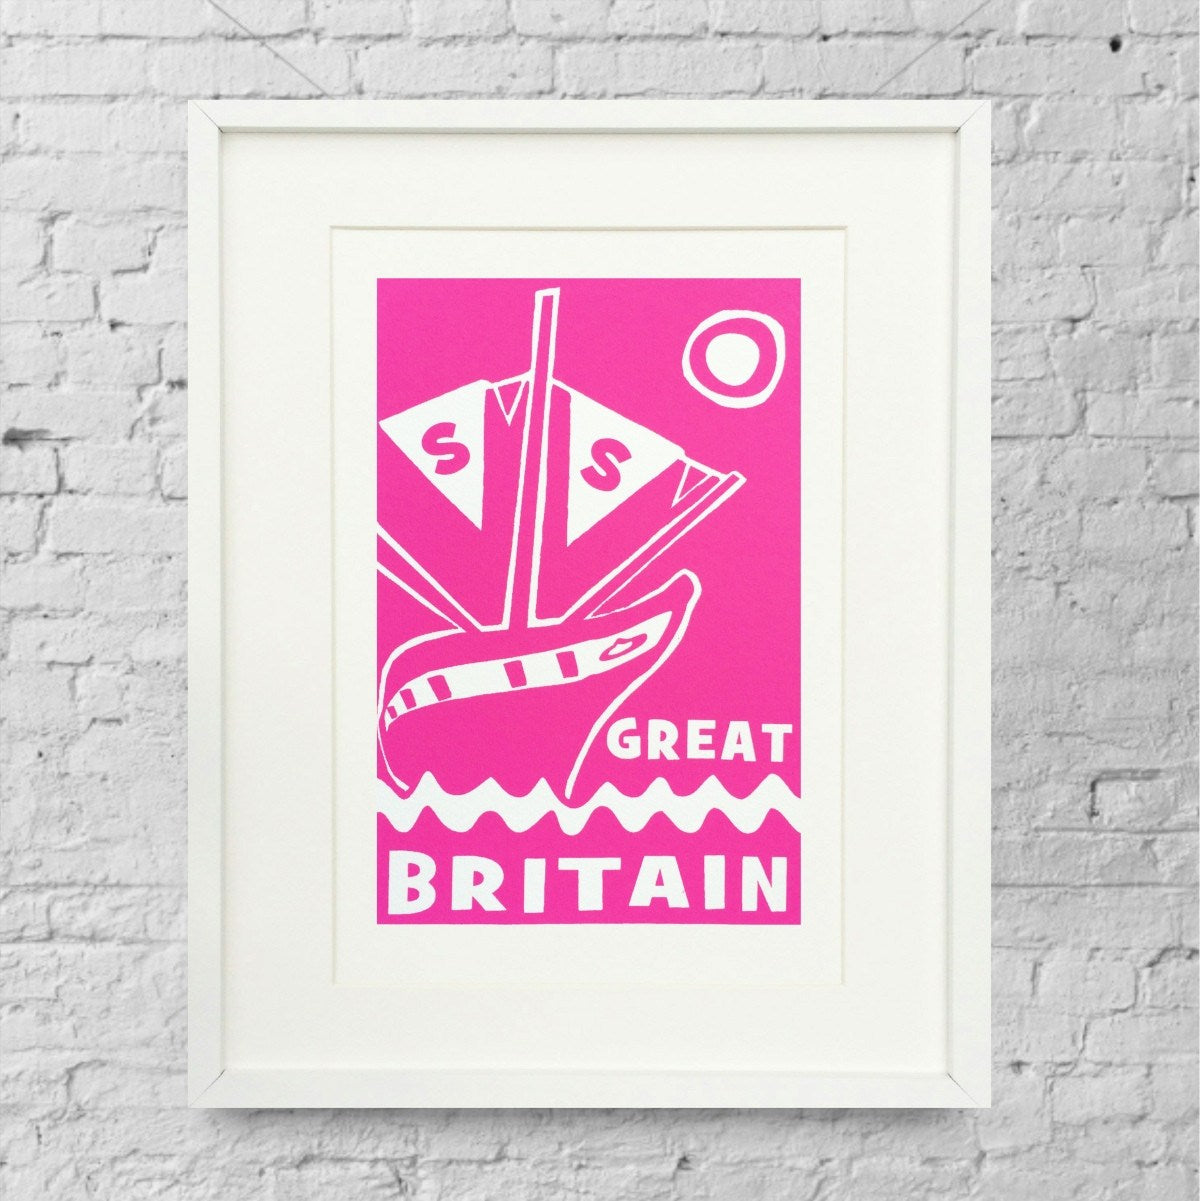 ss Great Britain Limited Edition Magenta Screen Print by Lou Boyce at The Bristol Shop